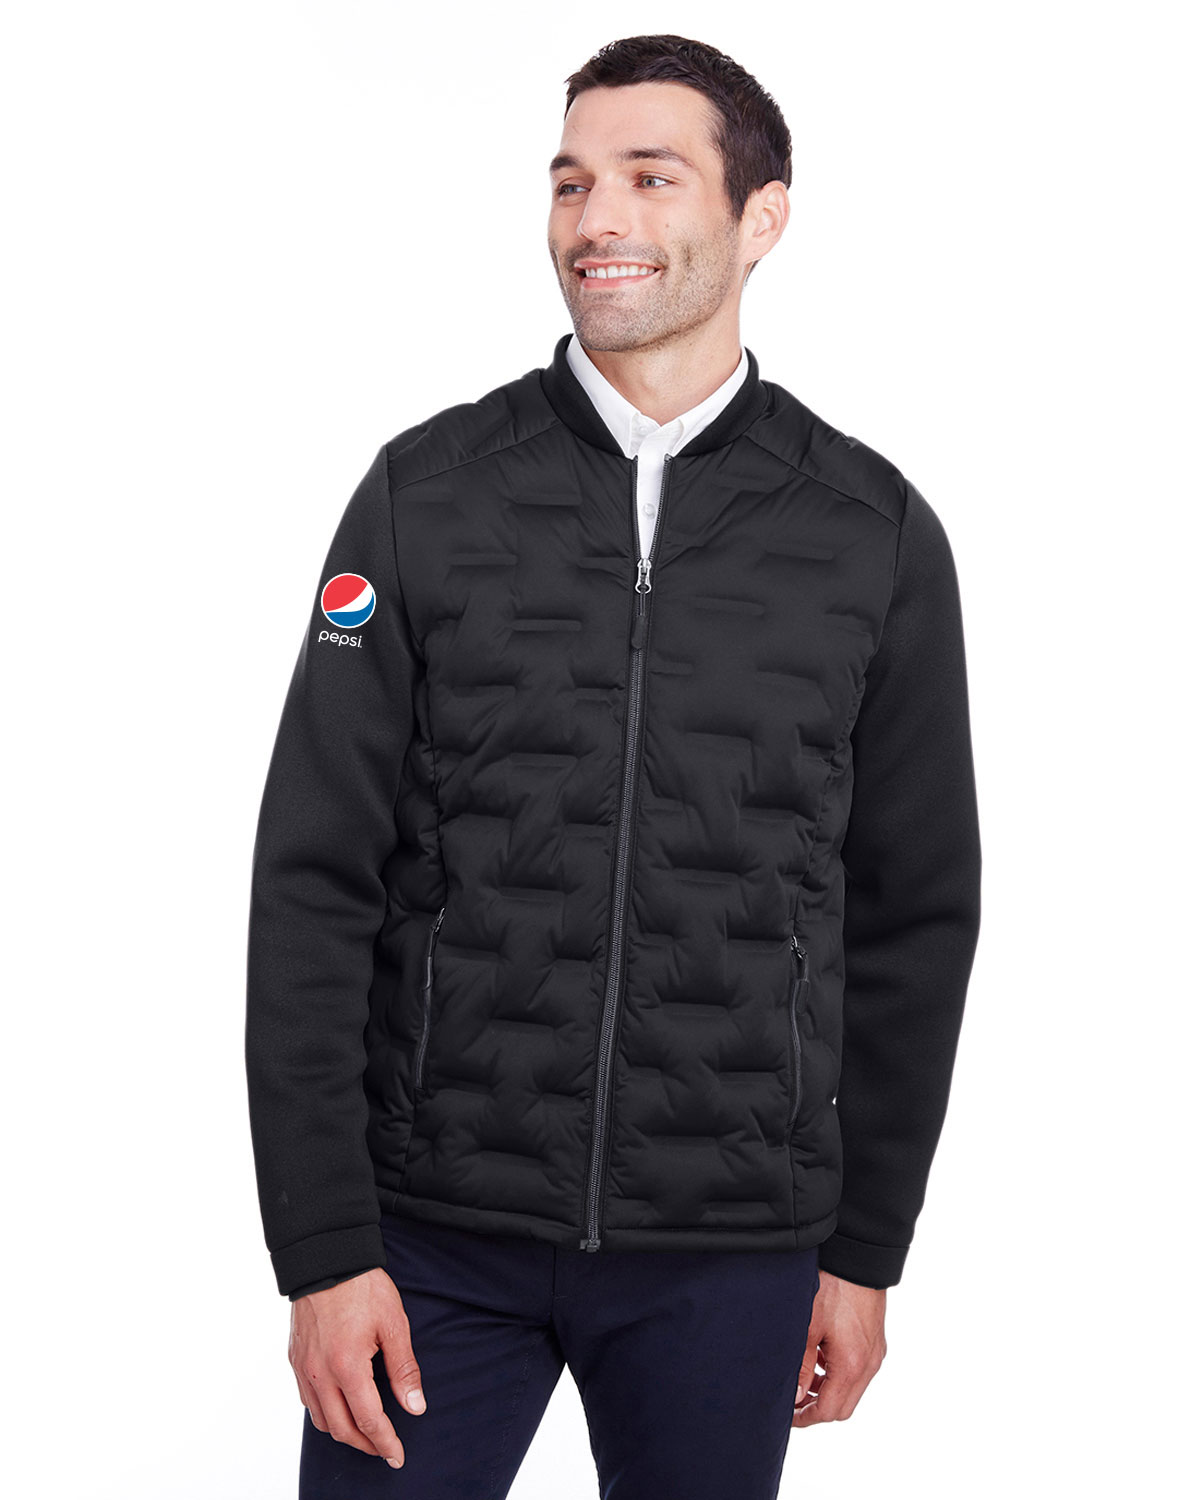 North End Men's Loft Pioneer Hybrid Bomber Jacket - Pepsi